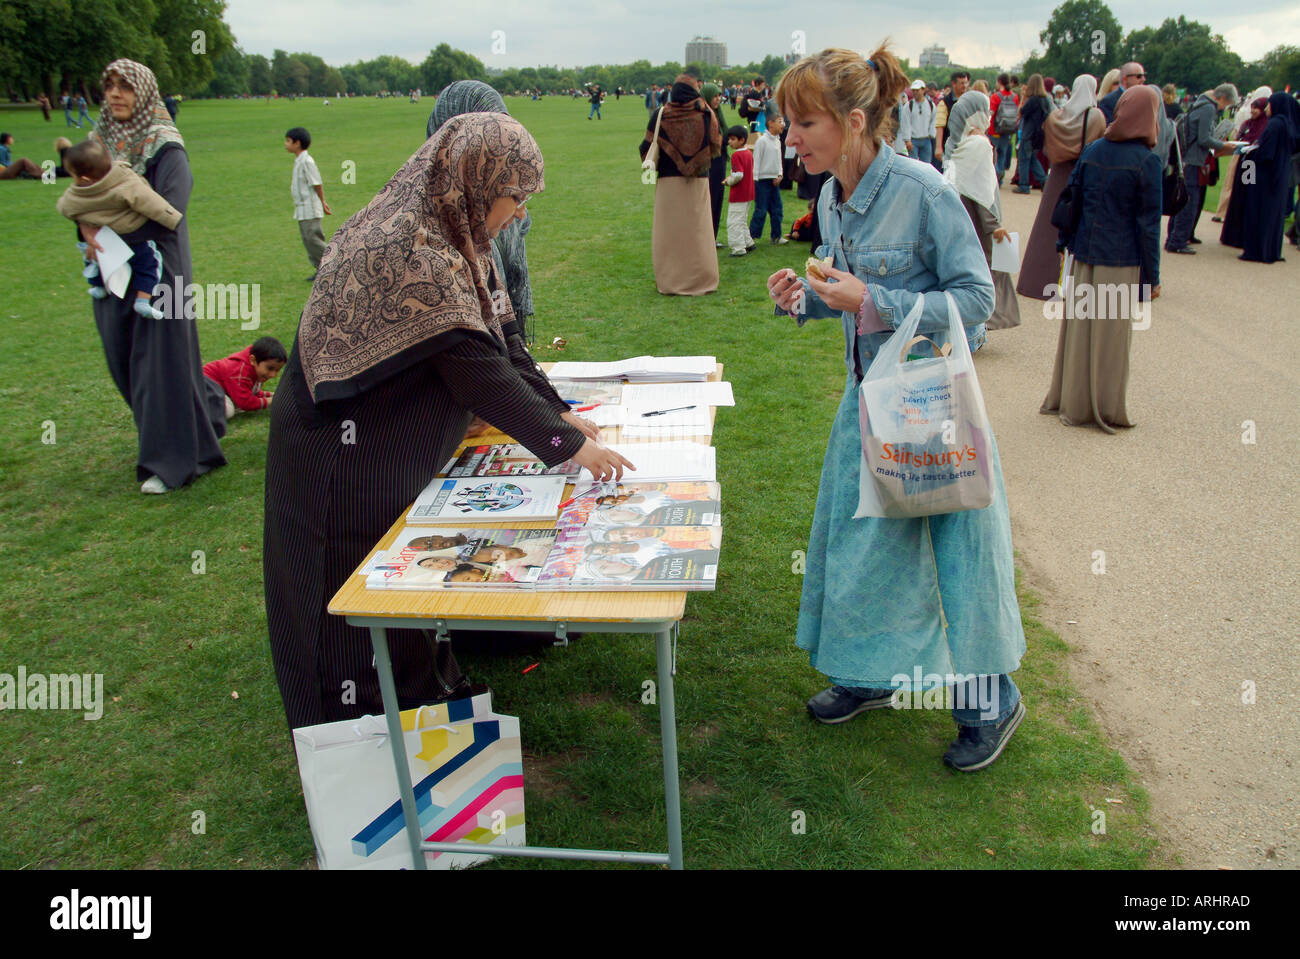 MUSLIM WOMAN INFORMING THE PUBLIC ABOUT ISLAM SEPTEMBER 2005 - Stock Image